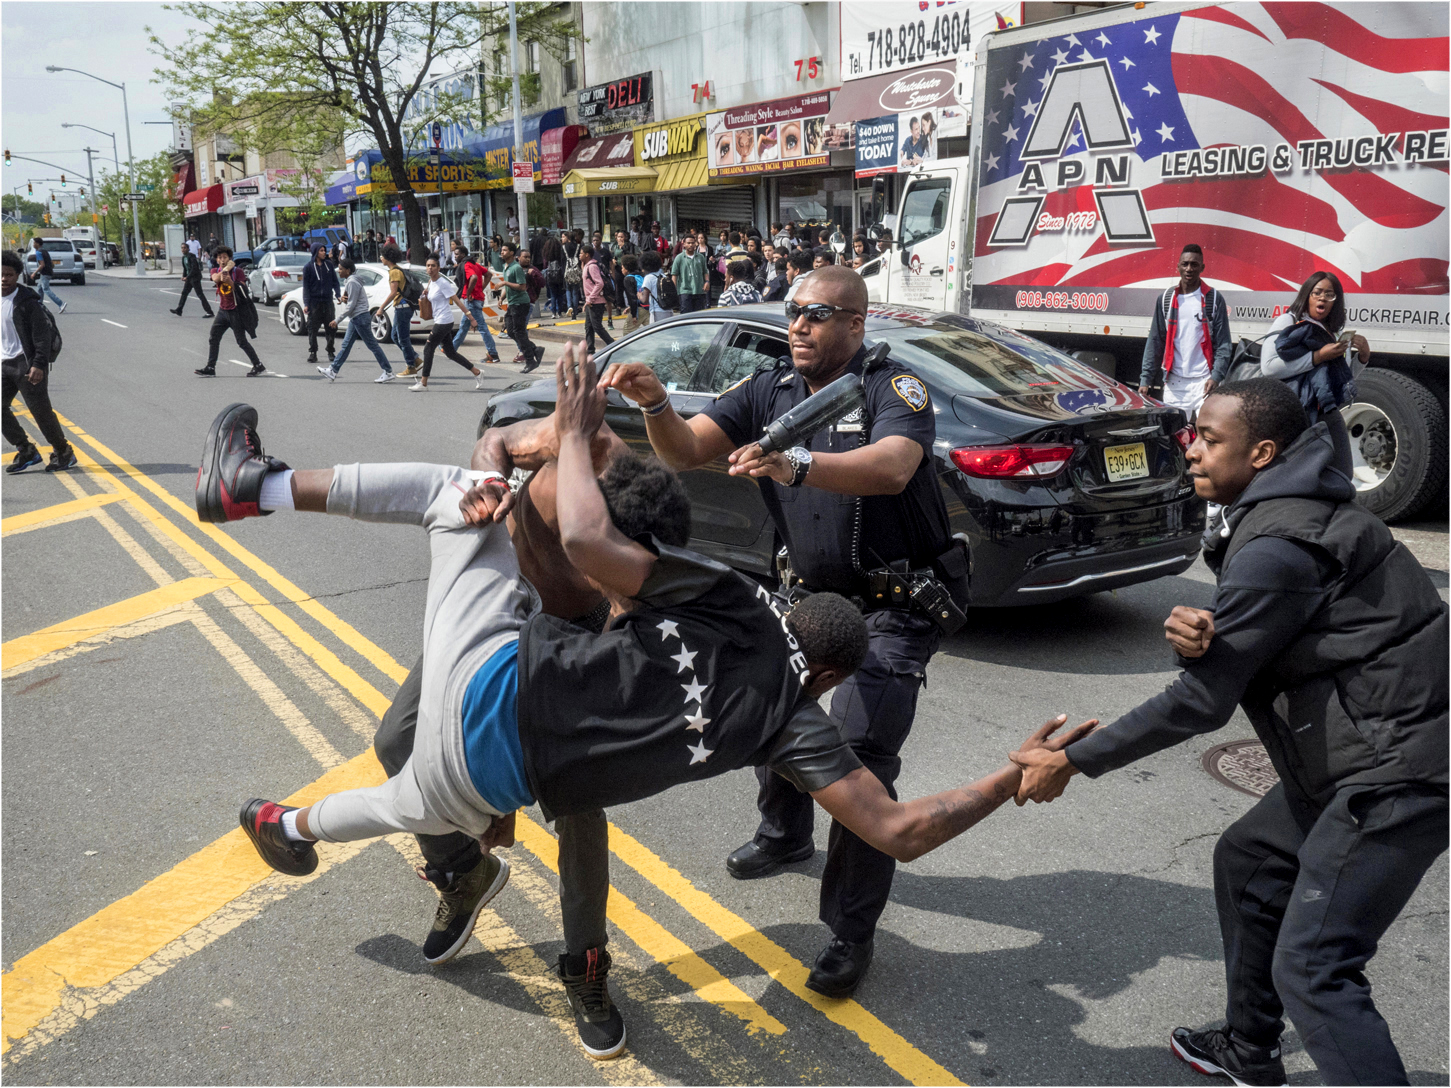 Black Lives Matter, Lgbtq Groups Find Common Ground In Fight Against Police Brutality